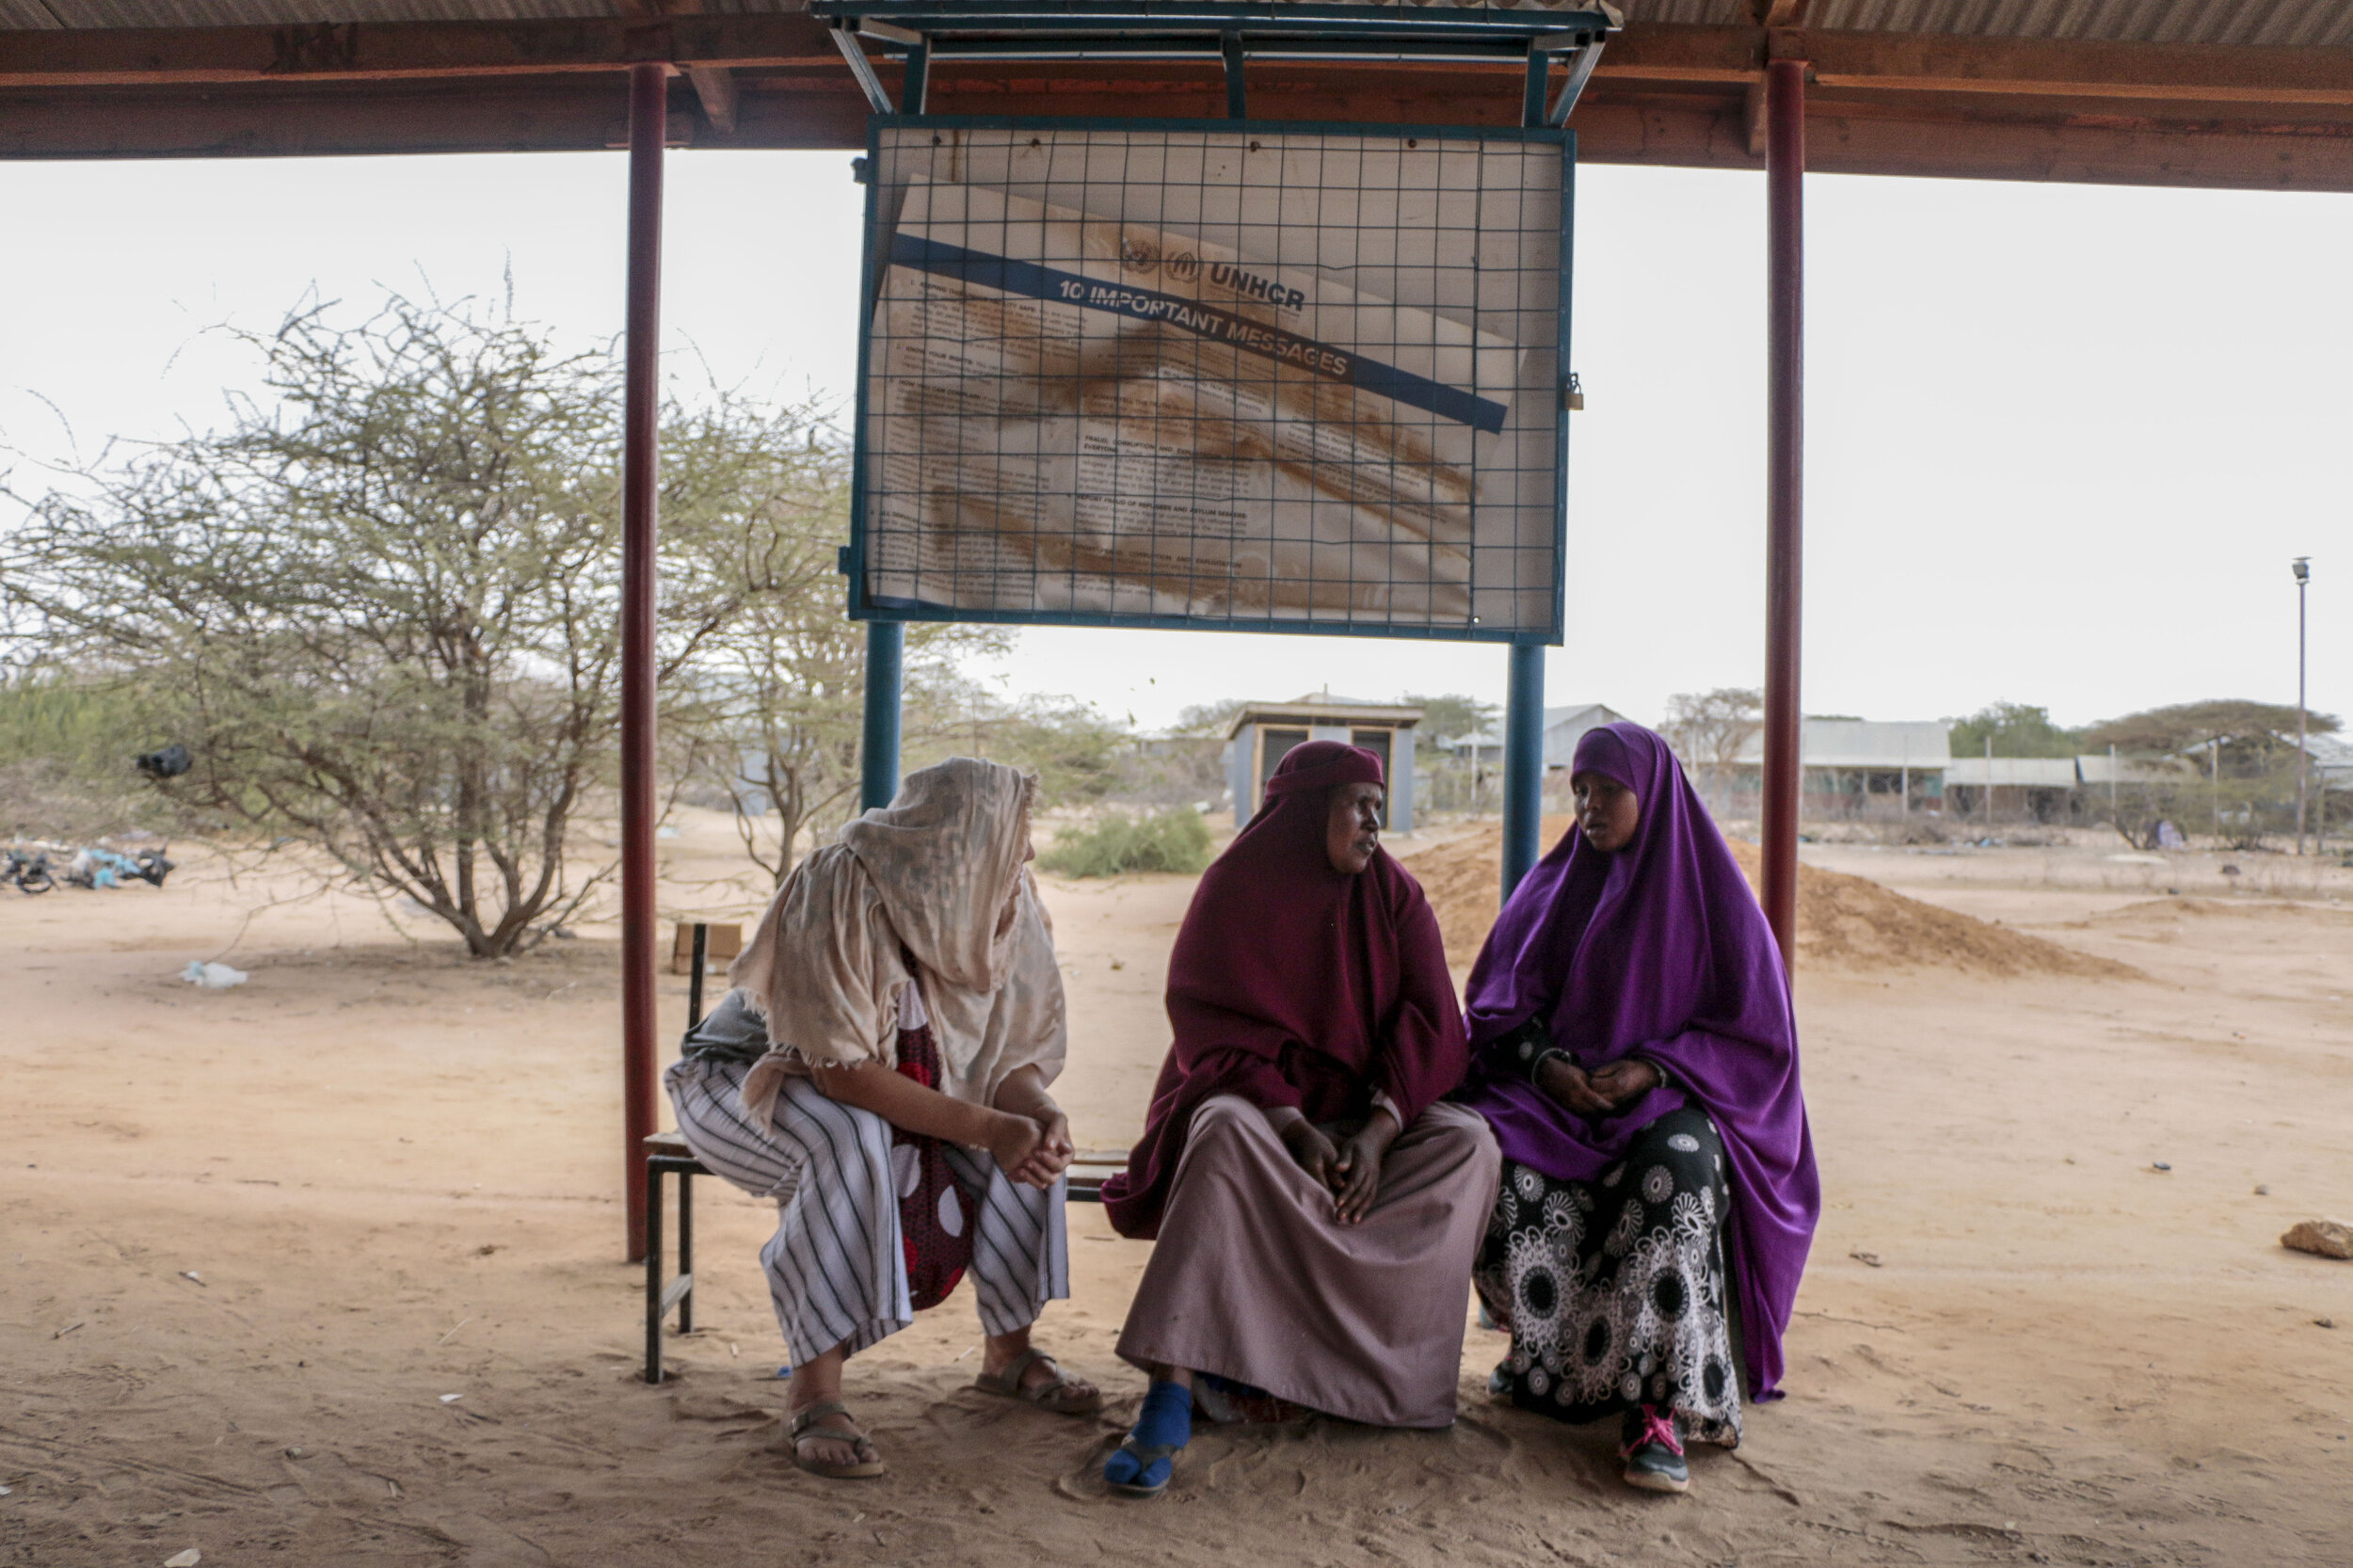 Jessica Rohloff, left, Ruqia Osman and Hamdi Kosar sit in the Dagahaley Transit Centre where many refugees wait to be interviewed for the resettlement process Aug. 9 at the Dagahaley Refugee Camp in Dadaab, Kenya. Osman, a Somali refugee and current resident, has been in the camp for around 30 years and went through the resettlement process with Kosar's family nearly a decade ago.